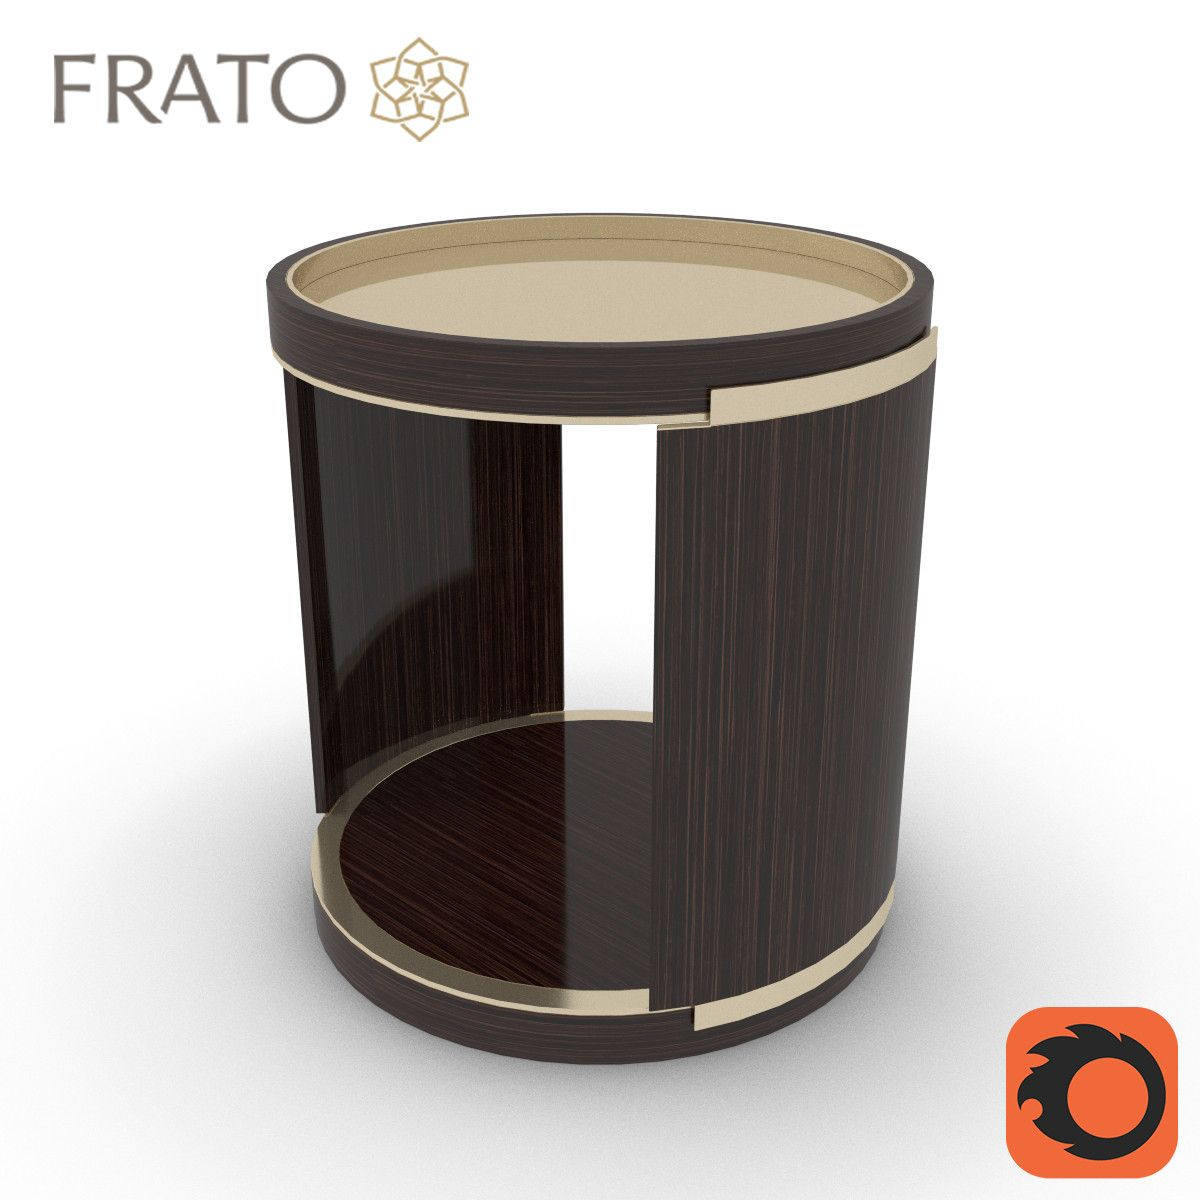 Kleiner Ecktisch Frato Bari Table 3d Max Interiors I Tables And Nightstands